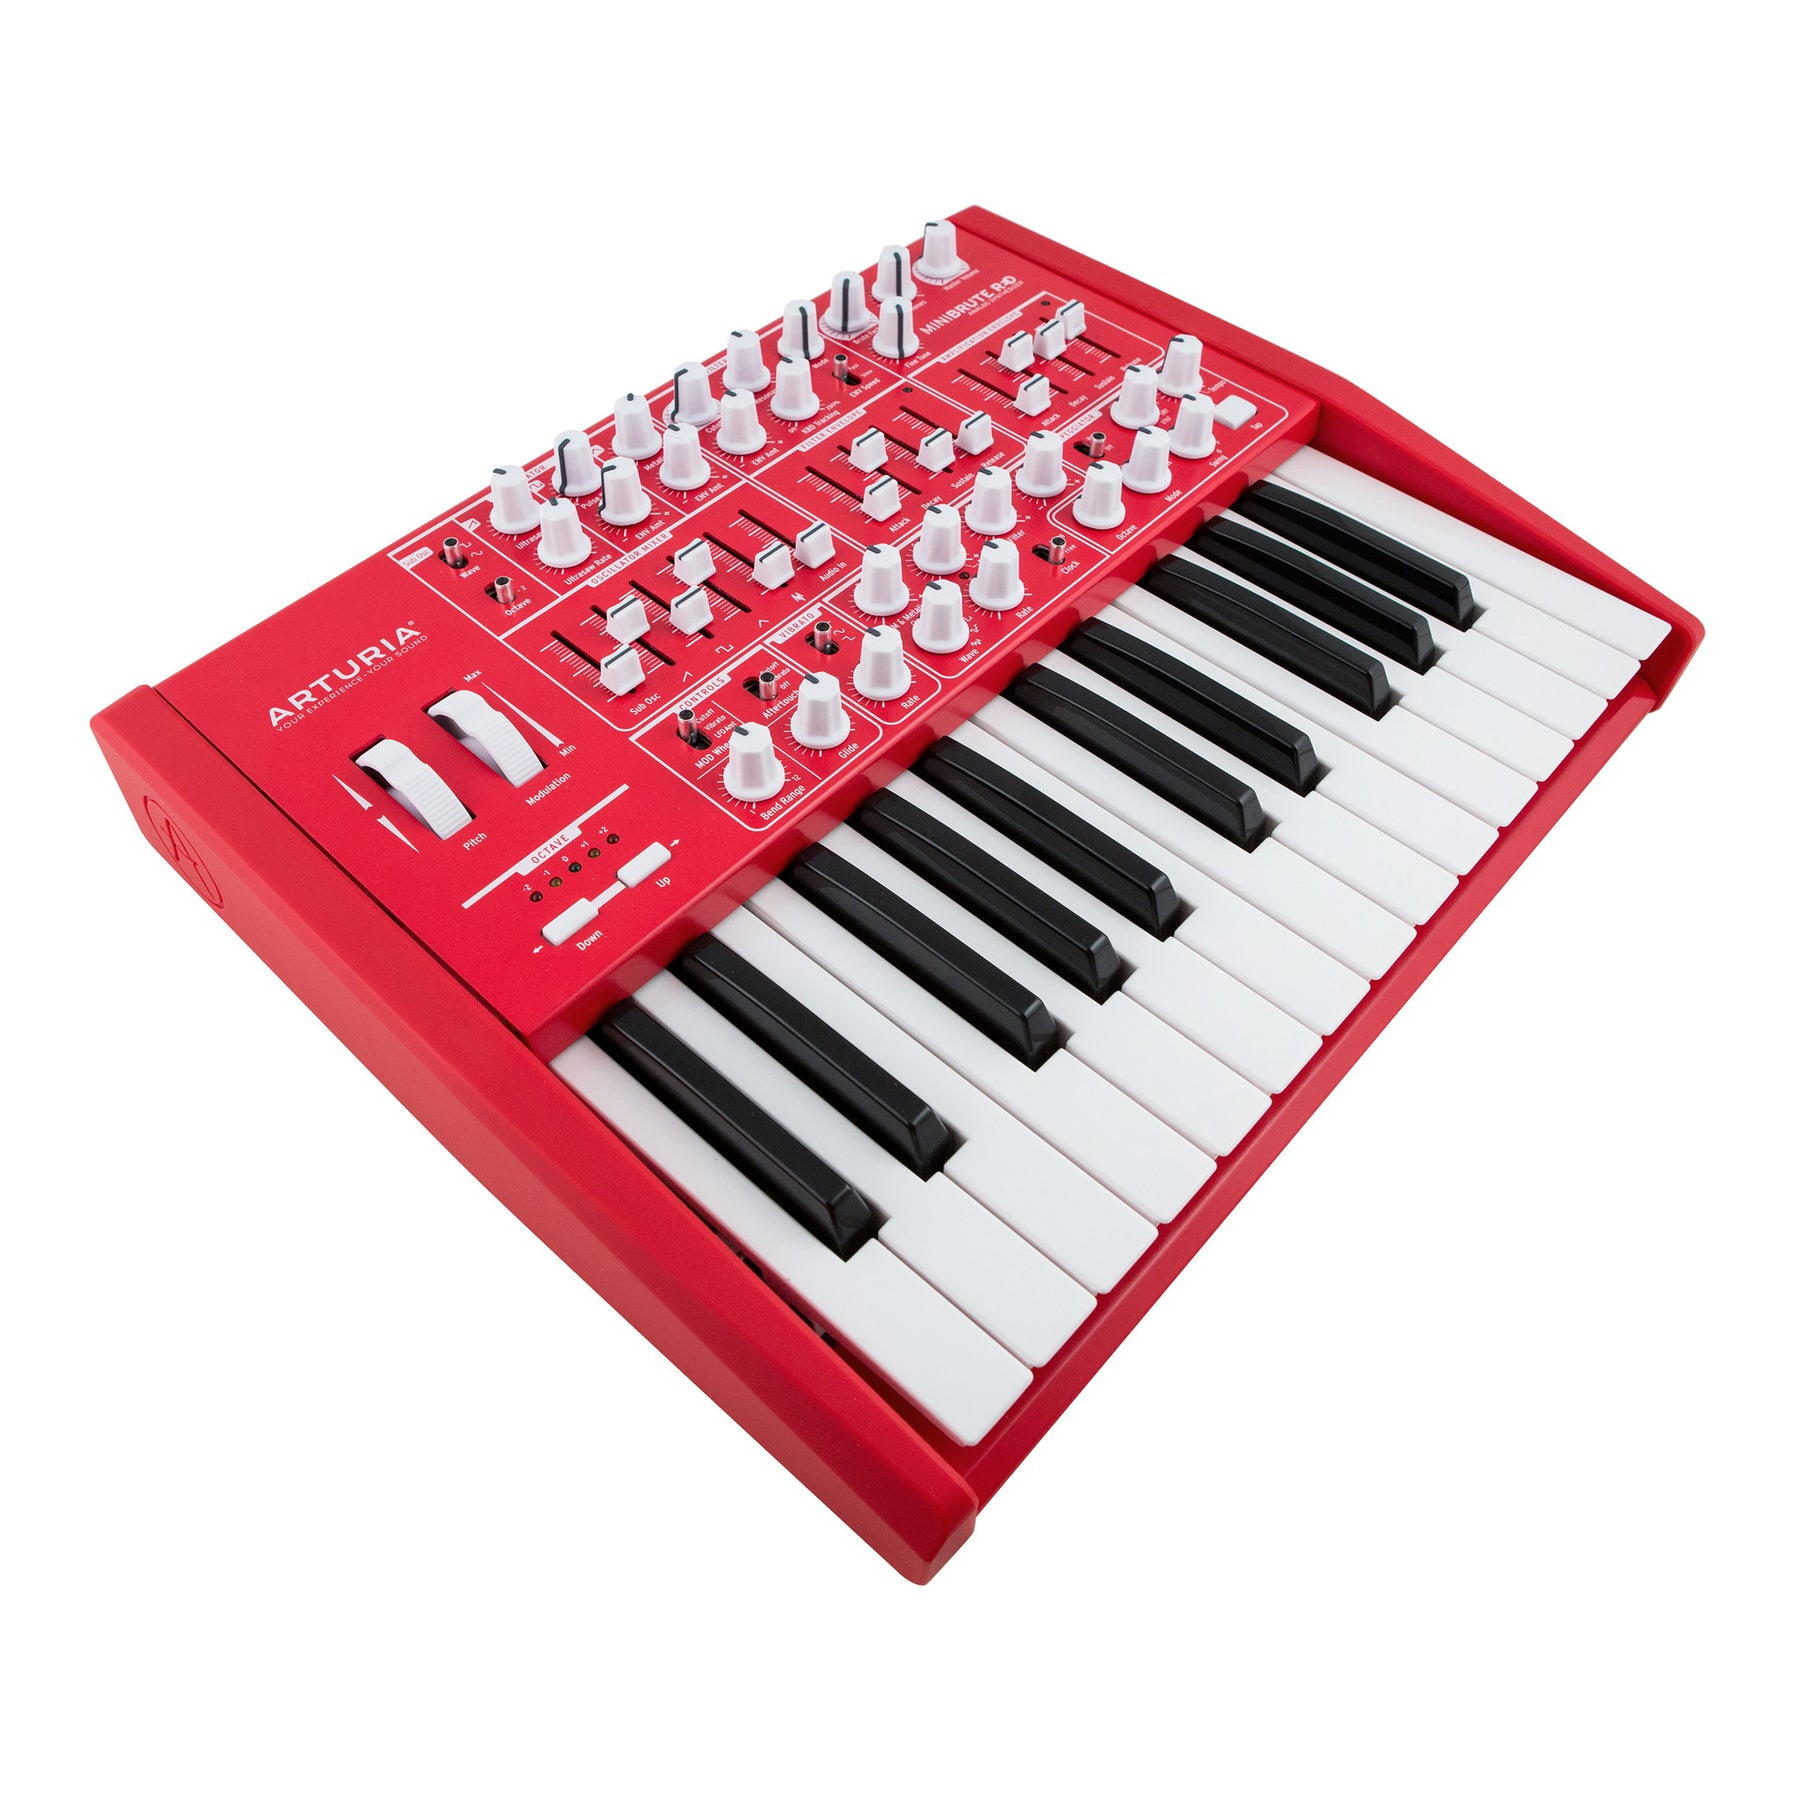 arturia minibrute analog synthesizer limited edition red. Black Bedroom Furniture Sets. Home Design Ideas